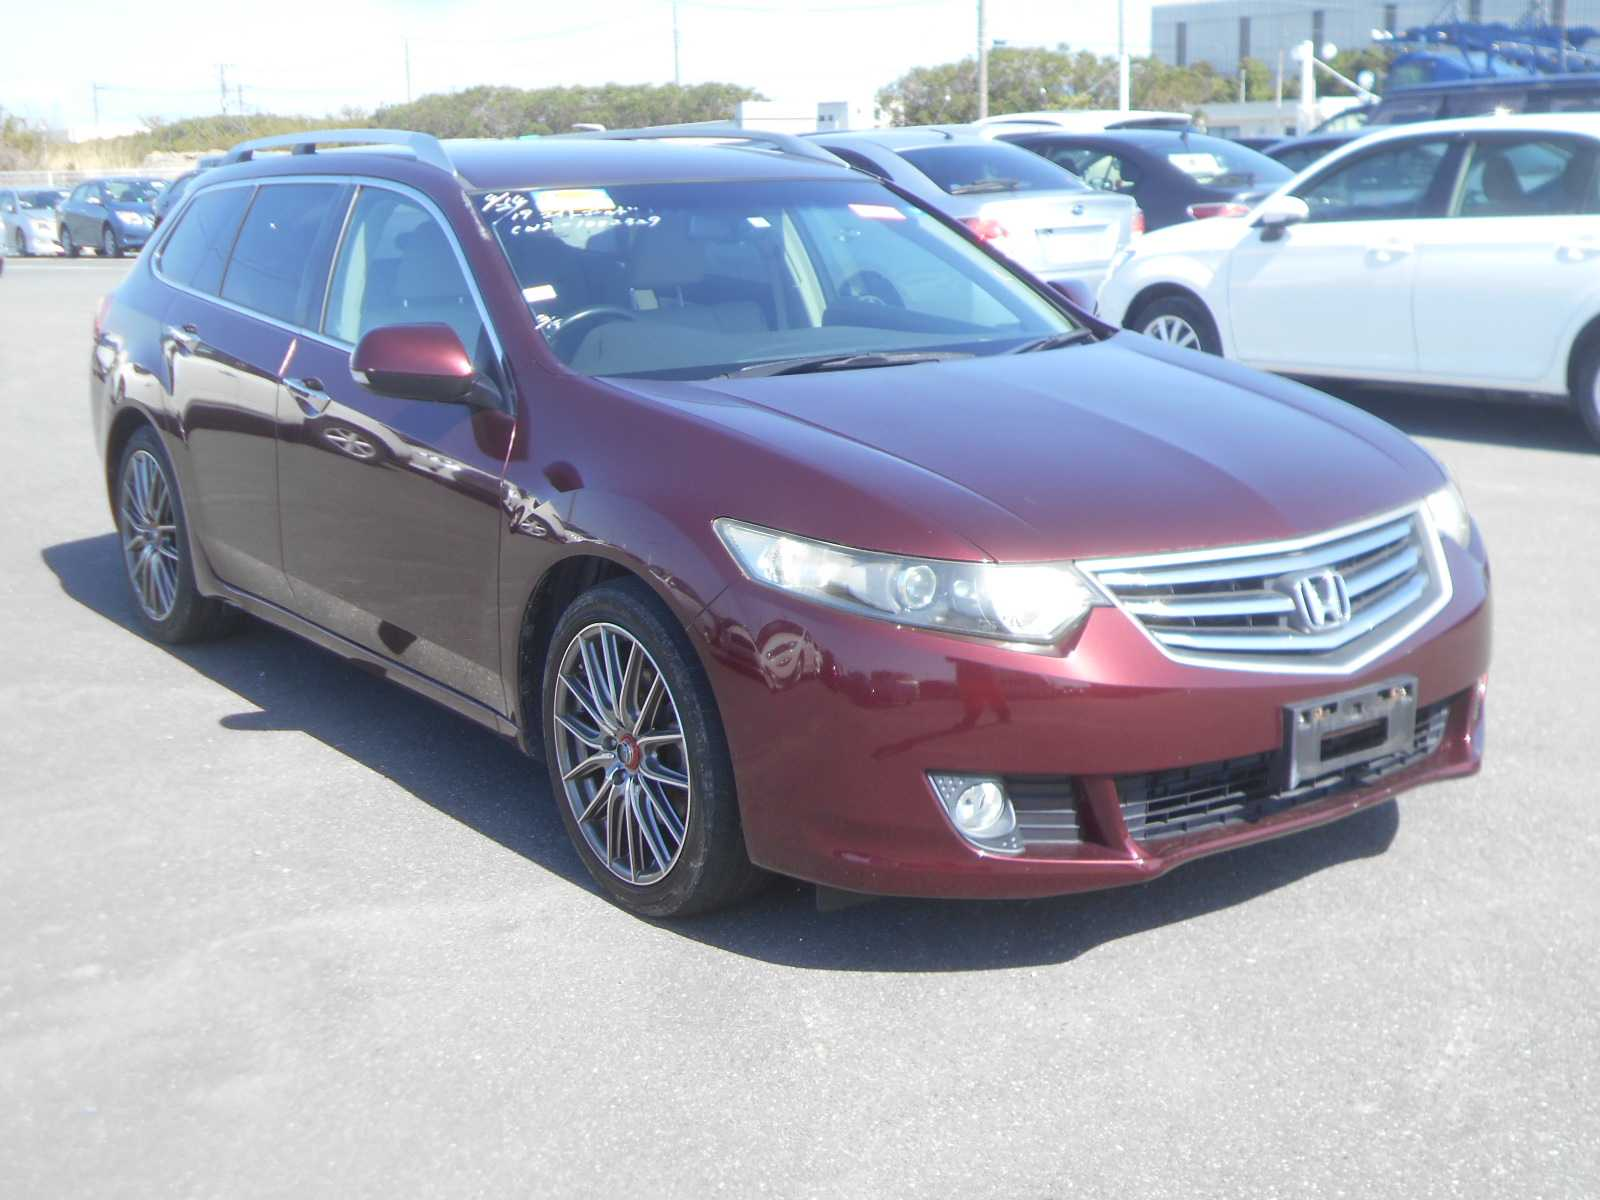 ACCORD WAGON